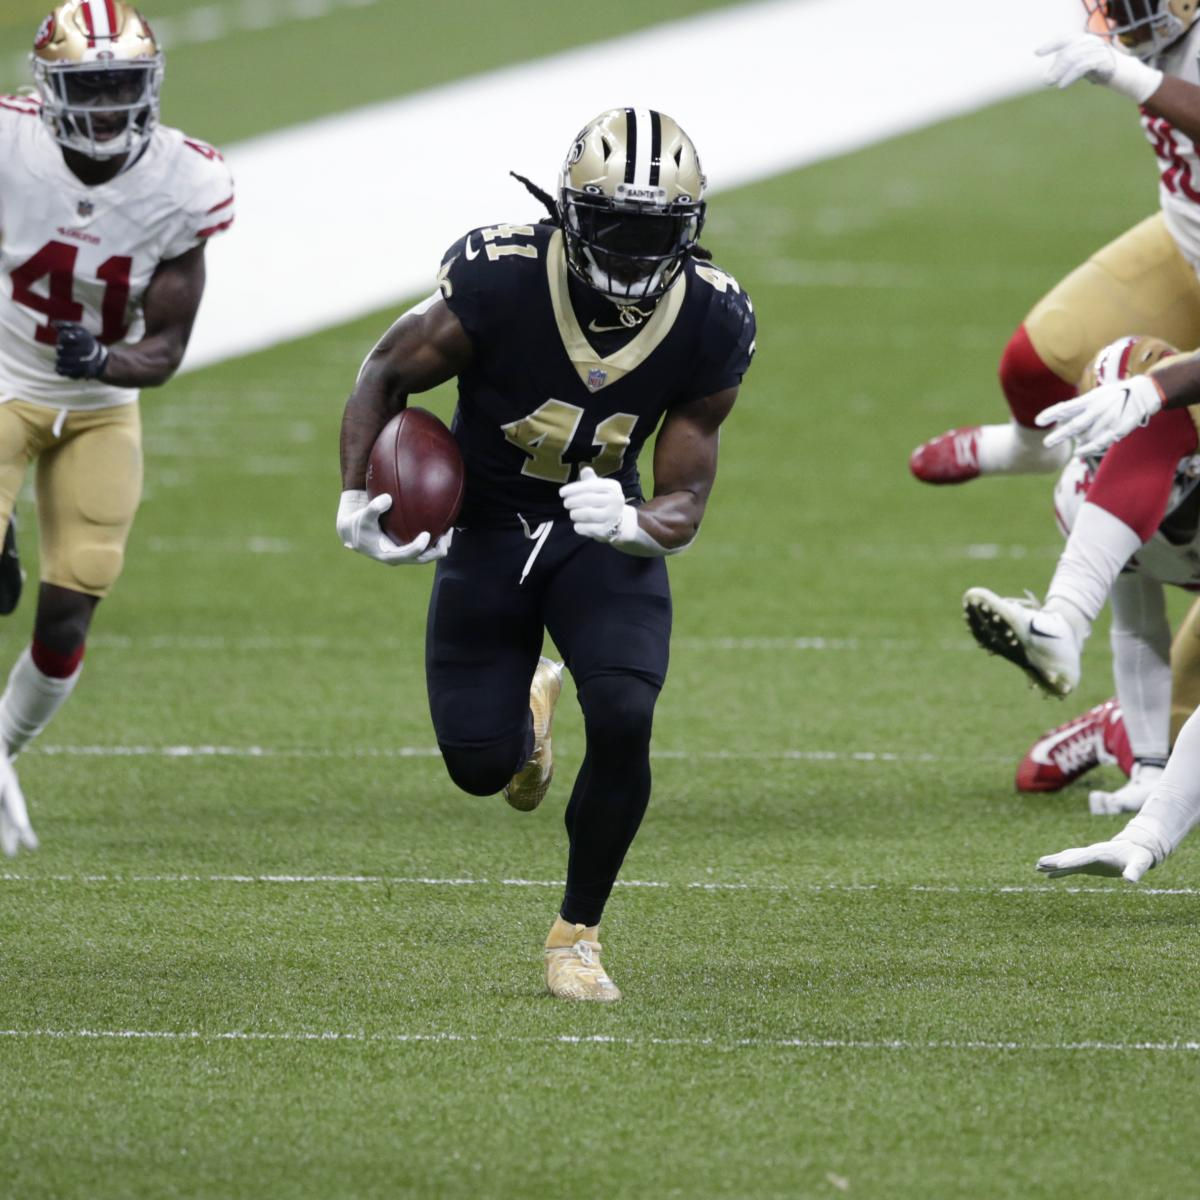 Fantasy Football Week 11 Rankings: Updated Positional Breakdown for Flex and PPR